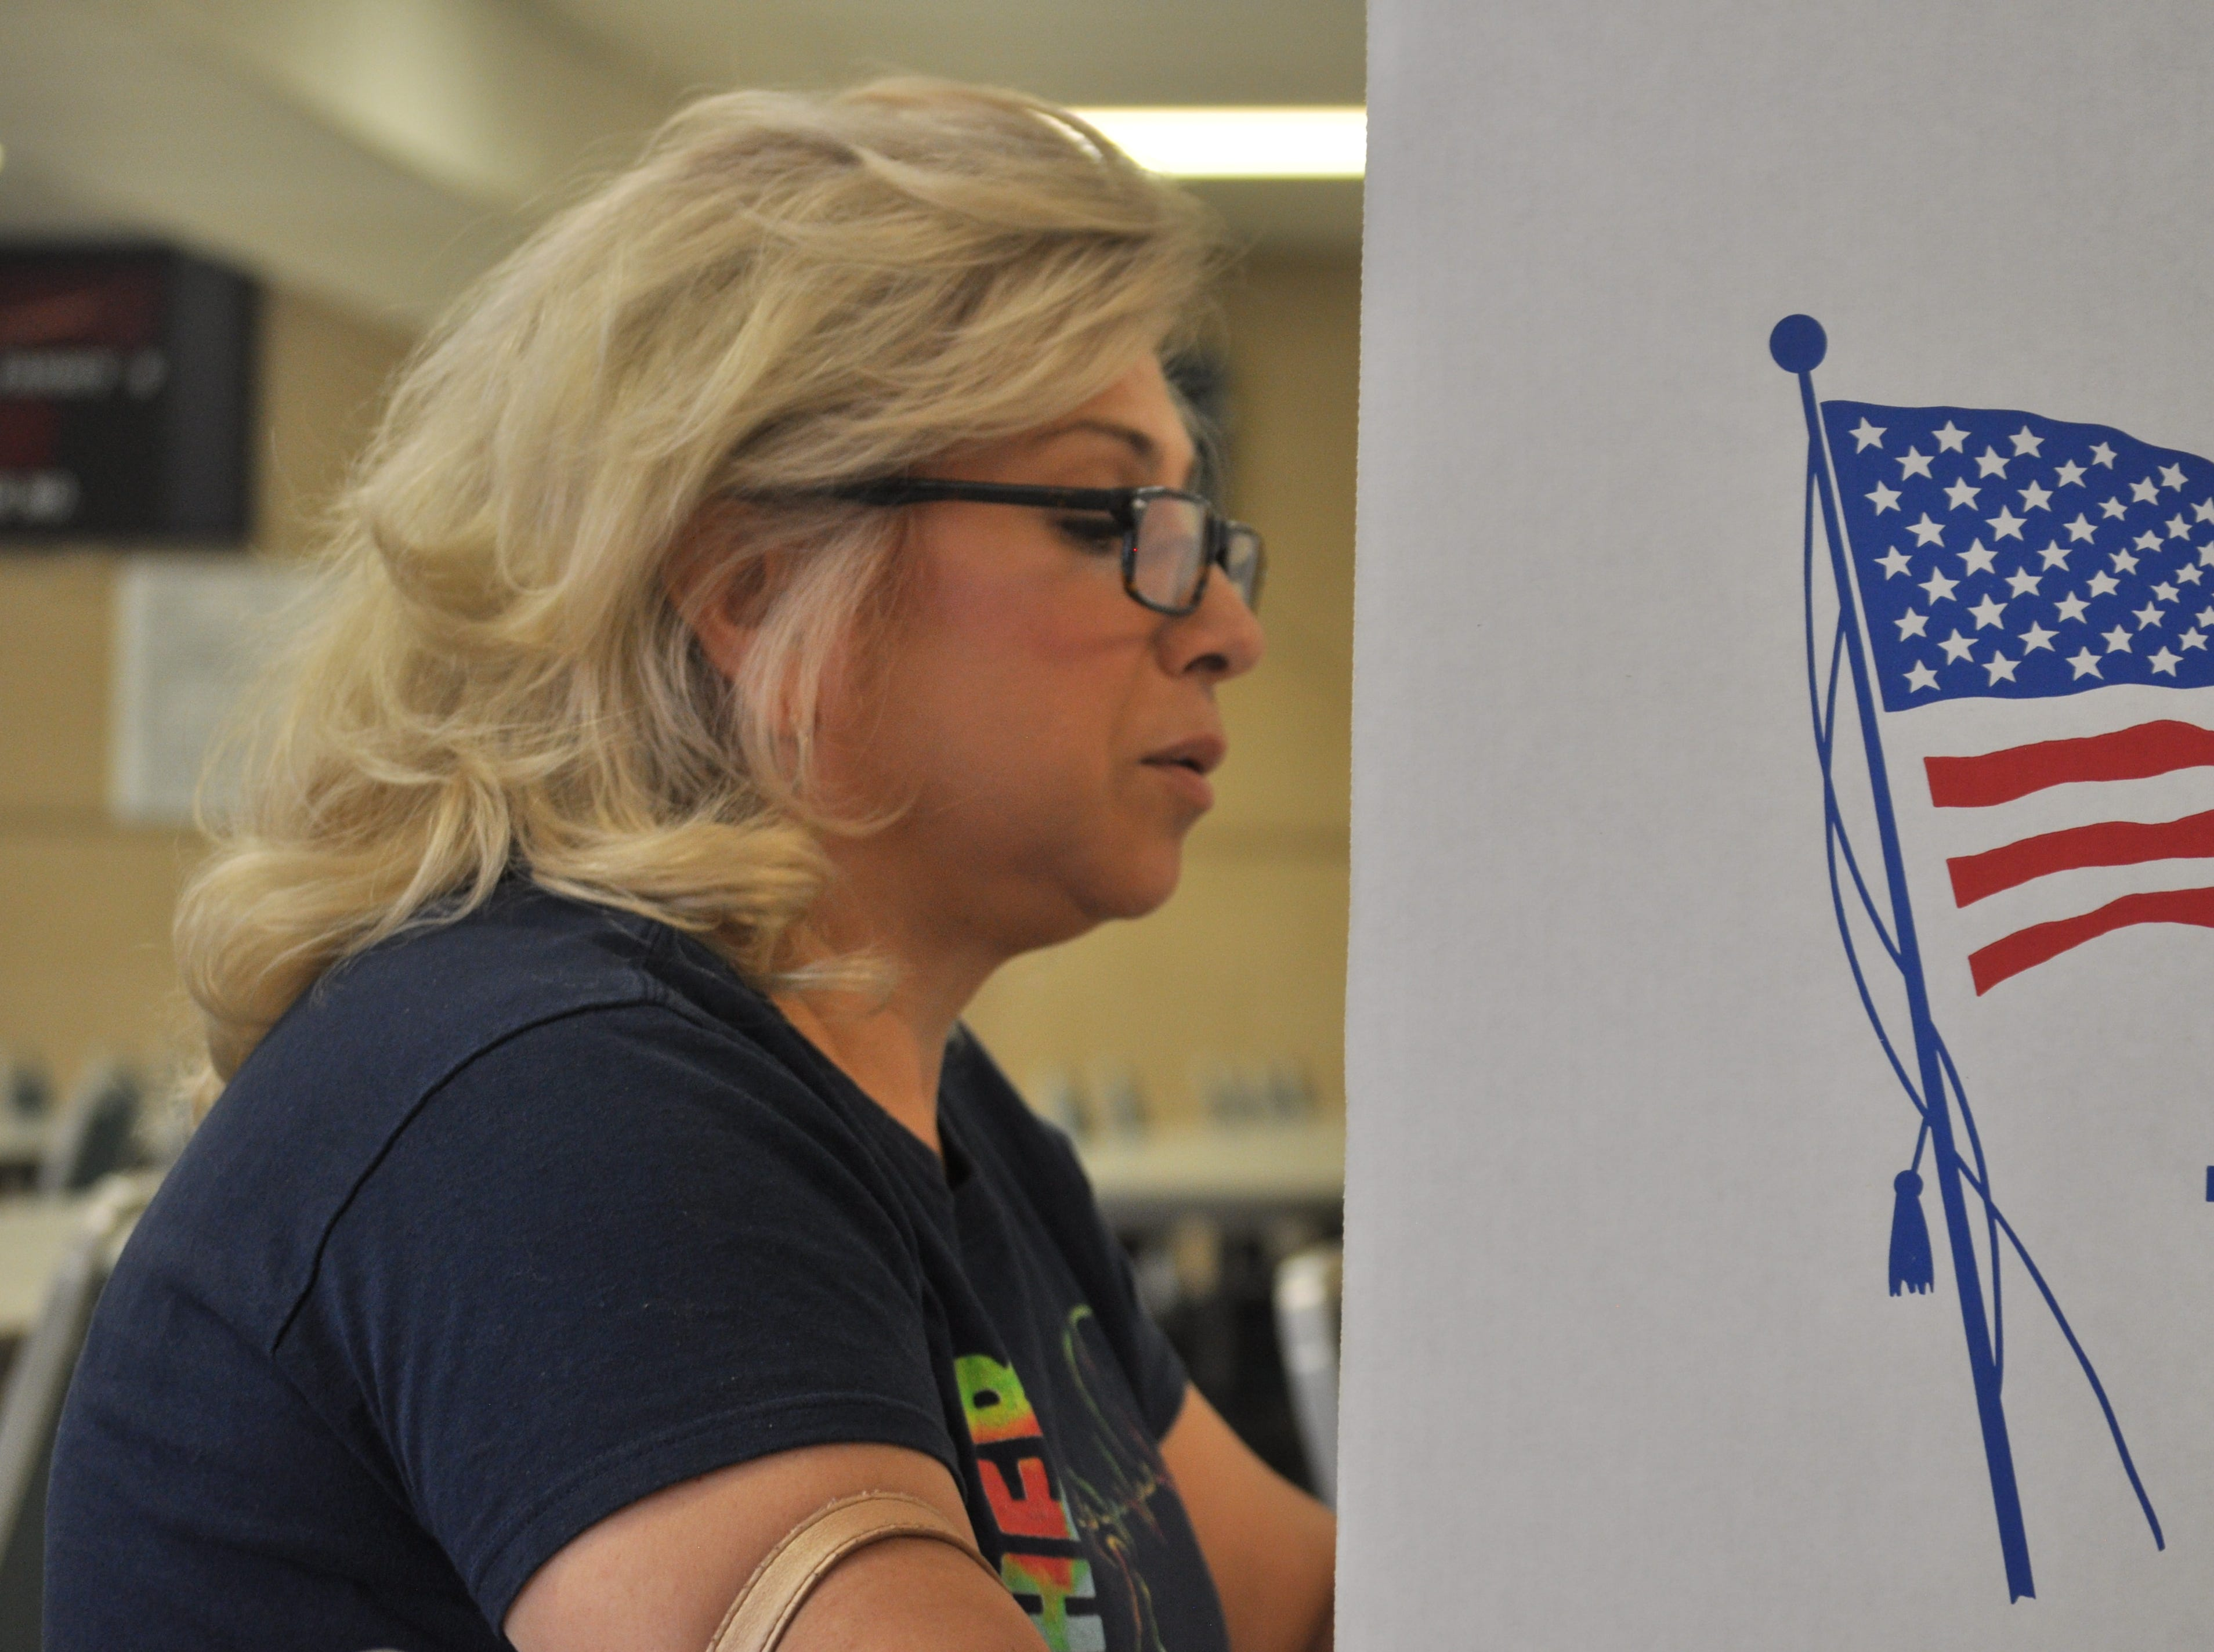 Gwen Lopez casts her ballot, Nov. 6, 2018 at the Veterans of Foreign Wars' Carlsbad post.